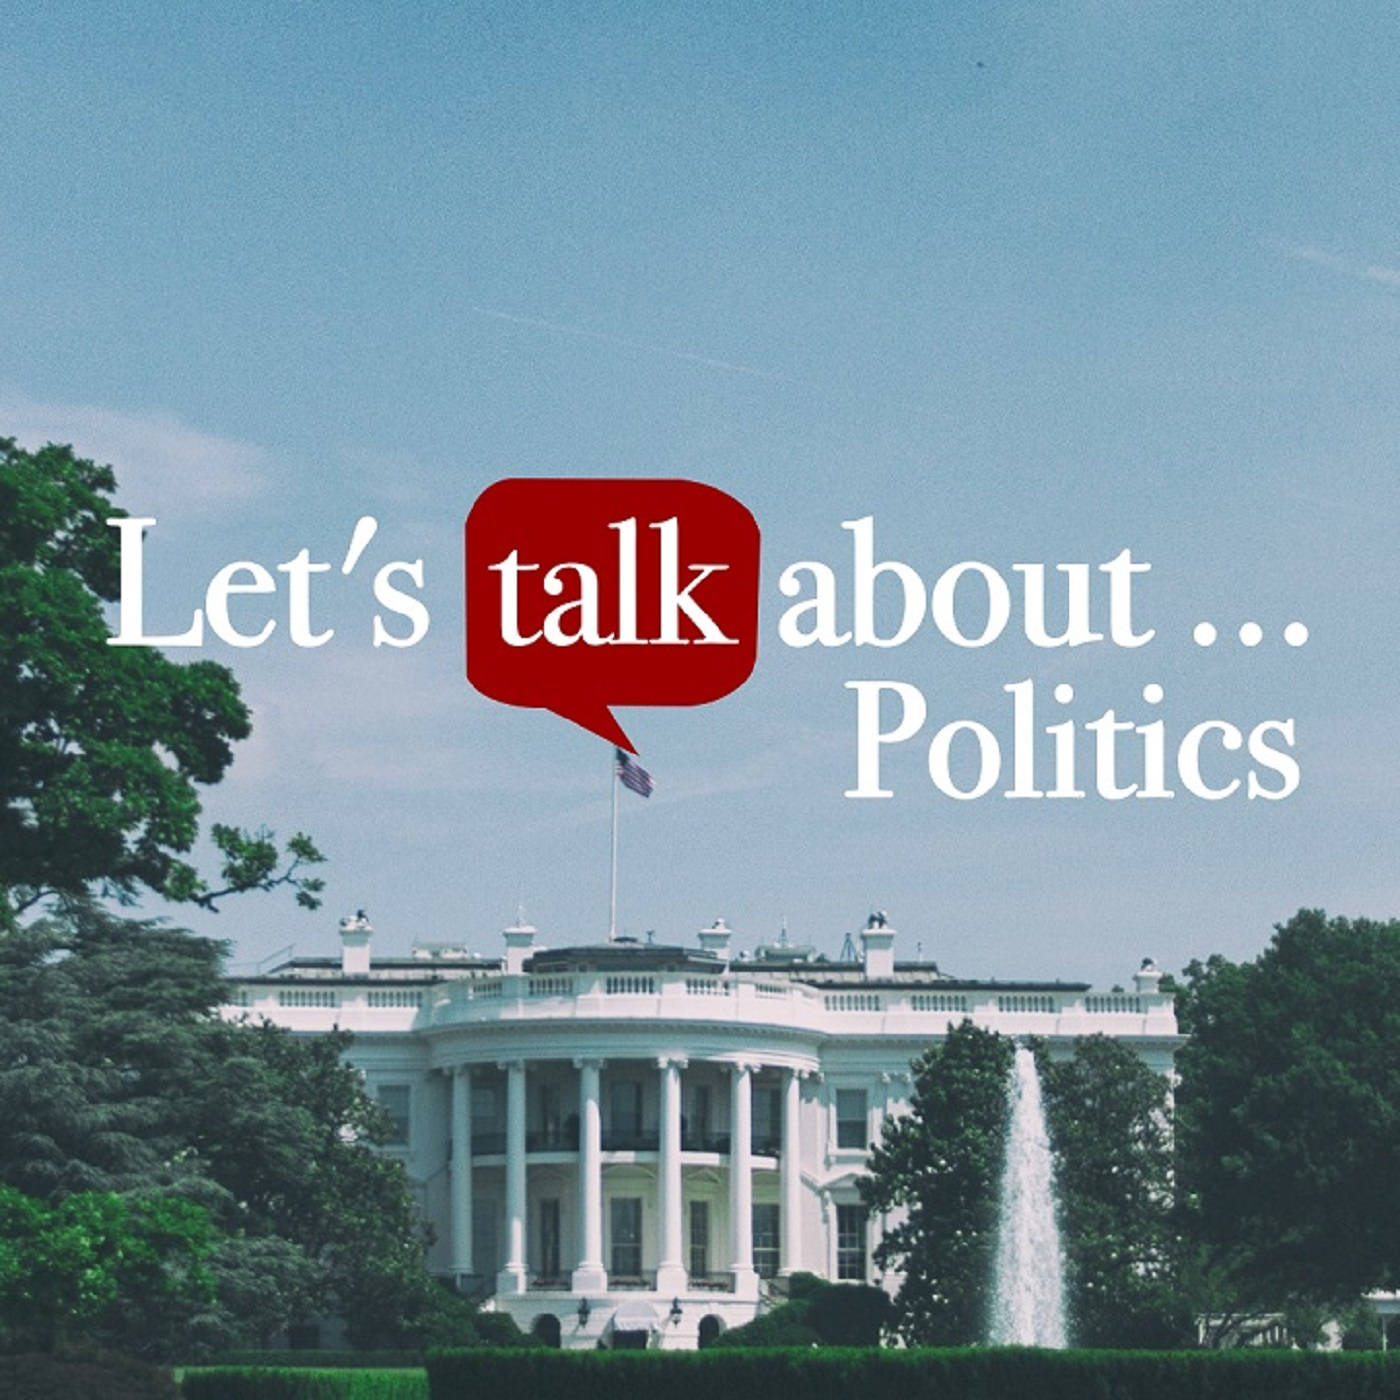 Let's talk about: Politics